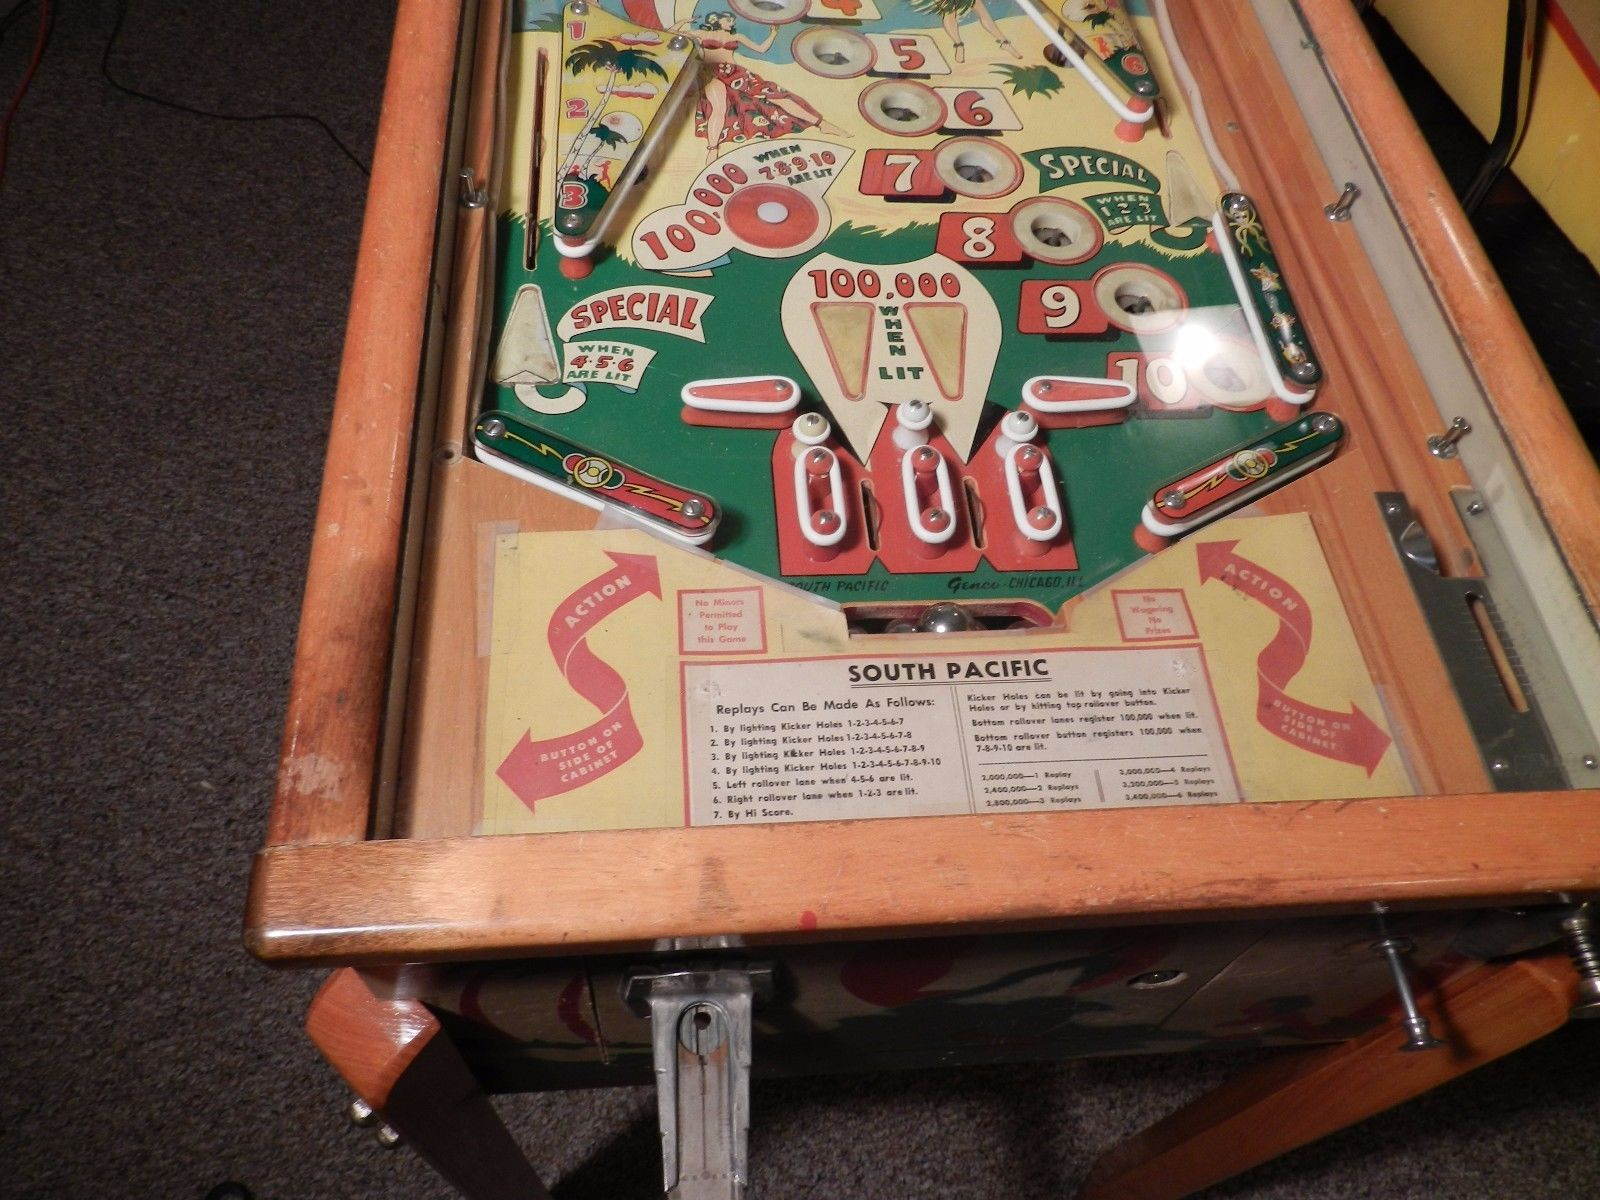 GENCO South Pacific Pinball Machine 1950 Woodrail eBay